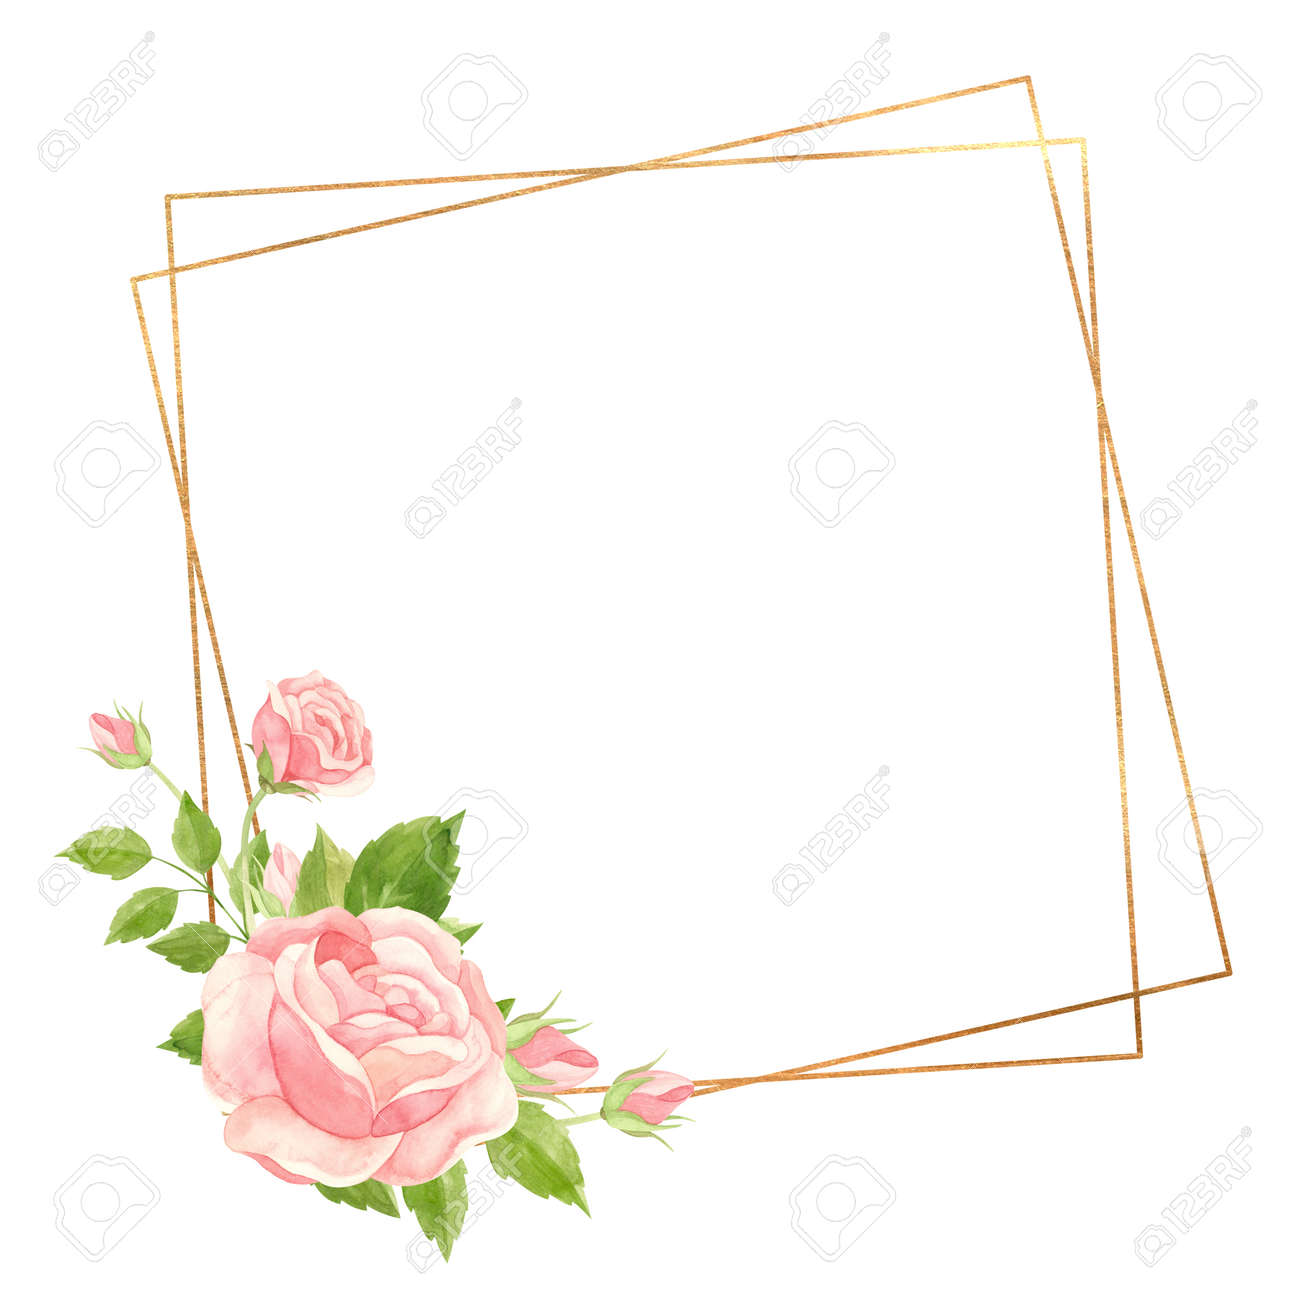 Square frame with pink roses and gold geometric frame. Floral template for wedding invitations, Valentine's Day postcards, posters, banners. Watercolor clipart on white background - 171757423